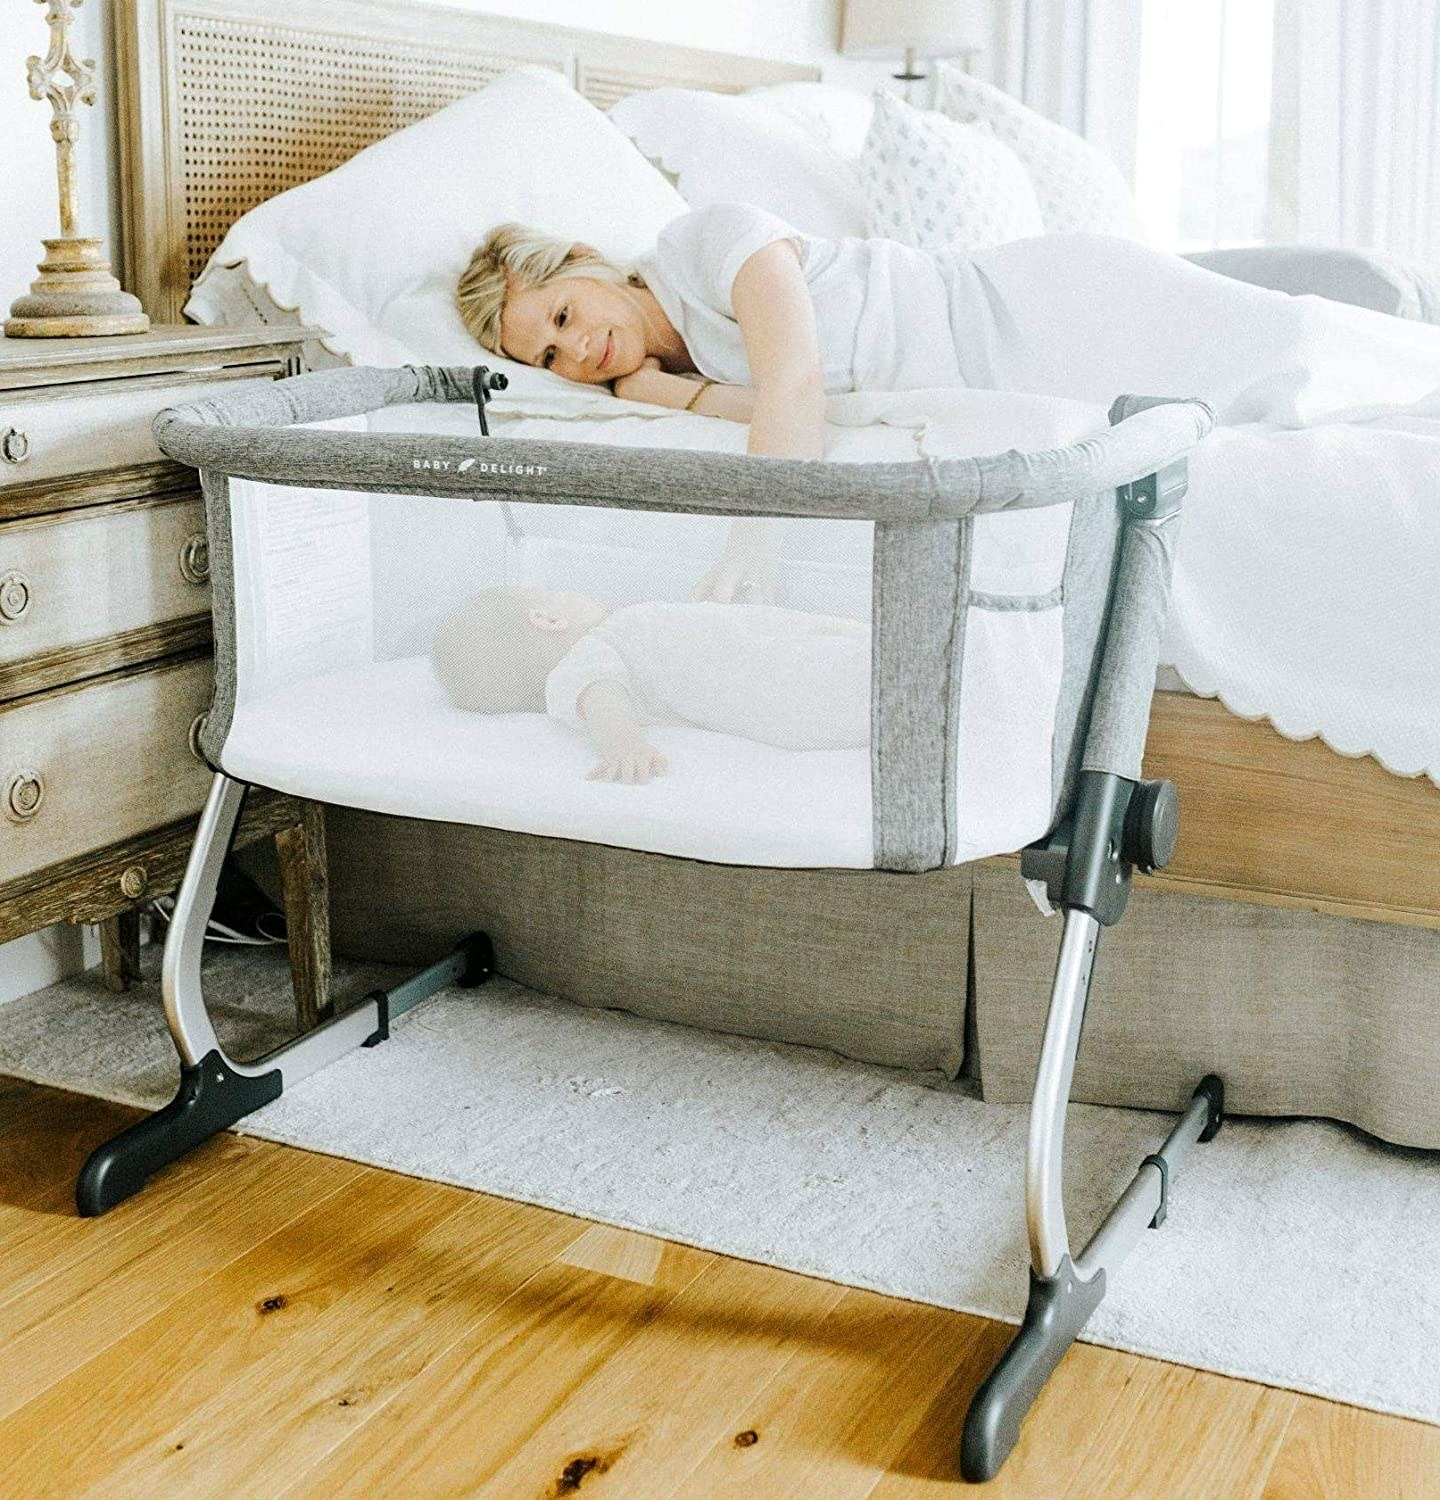 A small bassinet with an open side by the parent's bed, allowing them to reach for their baby